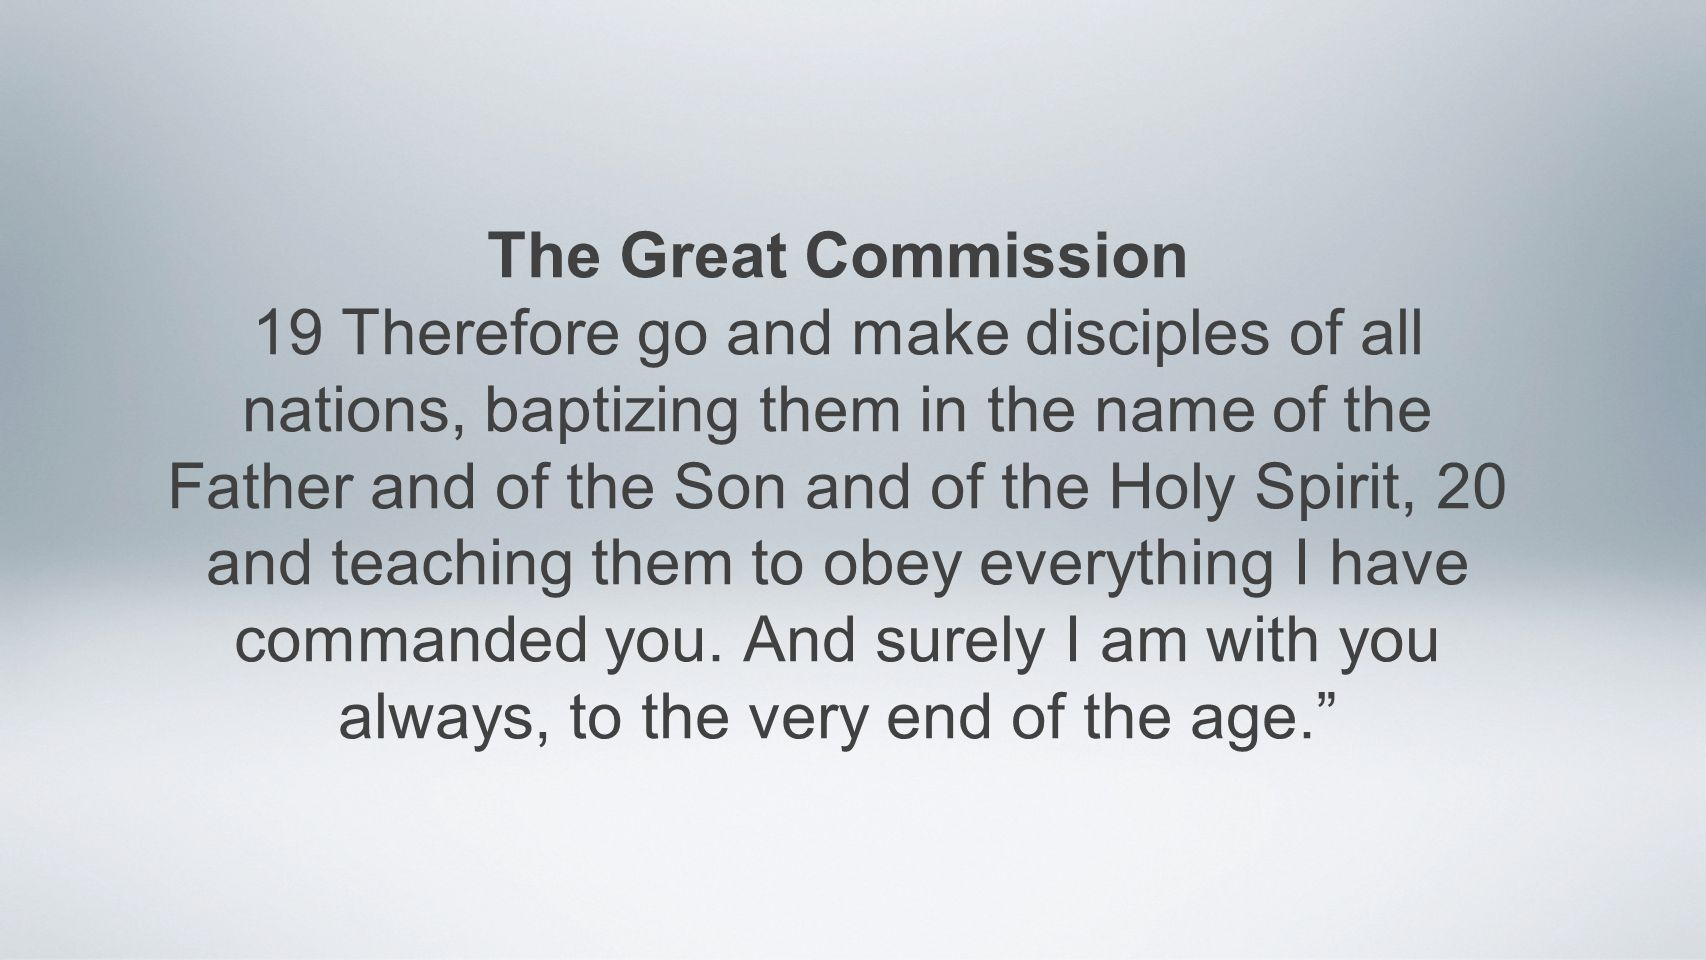 The Great Commission 19 Therefore go and make disciples of all nations, baptizing them in the name of the Father and of the Son and of the Holy Spirit, 20 and teaching them to obey everything I have commanded you.